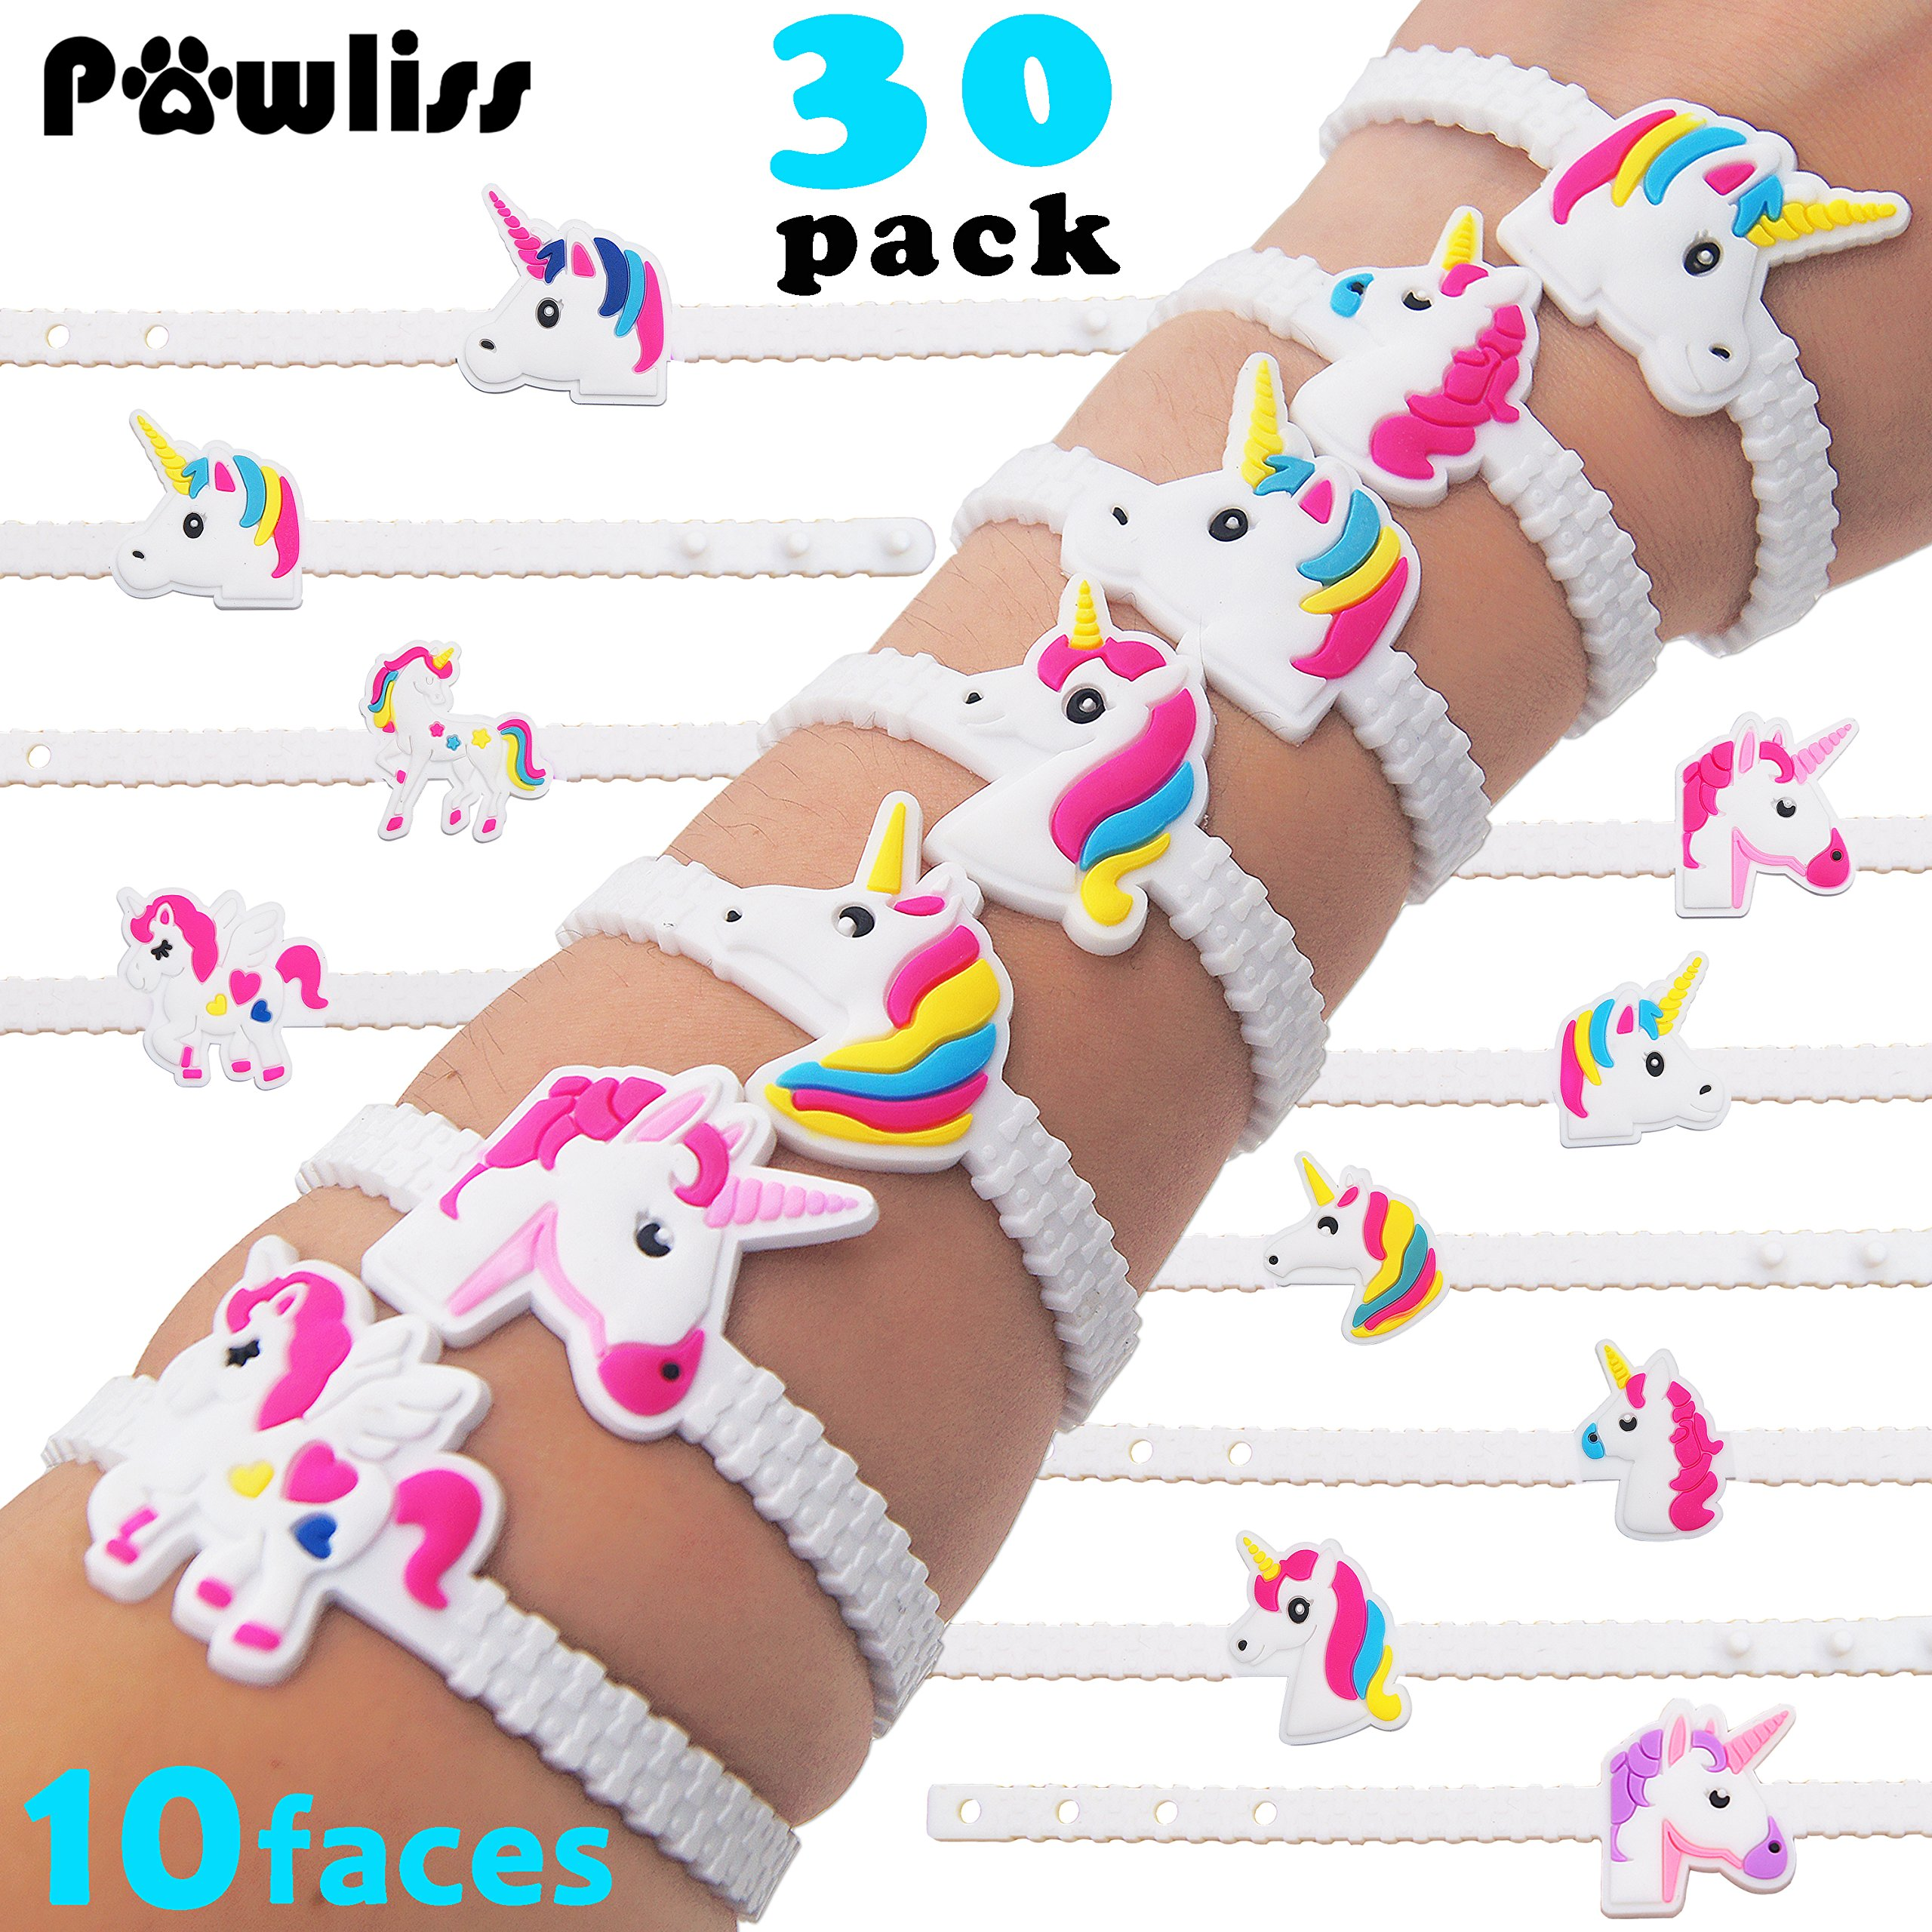 Pawliss Emoji Bracelets Wristband, Unicorn Birthday Party Favors Supplies for Kids Girls, Emoticon Toys Prizes Gifts, Rubber Band Bracelet 30 Pack